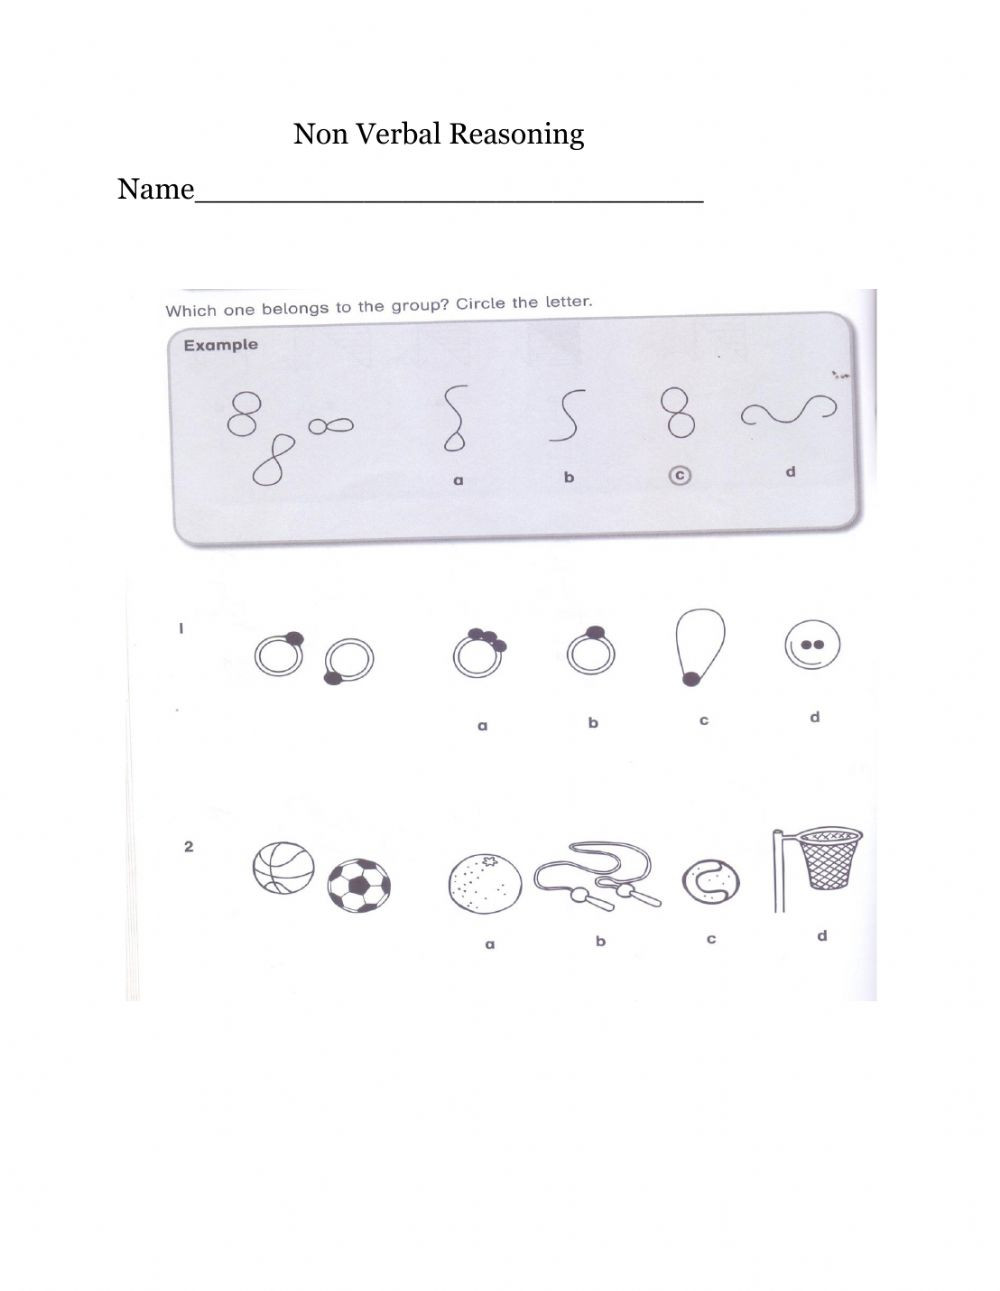 Reasoning Worksheets for Grade 1 Non Verbal Reasoning Worksheet Interactive Worksheet